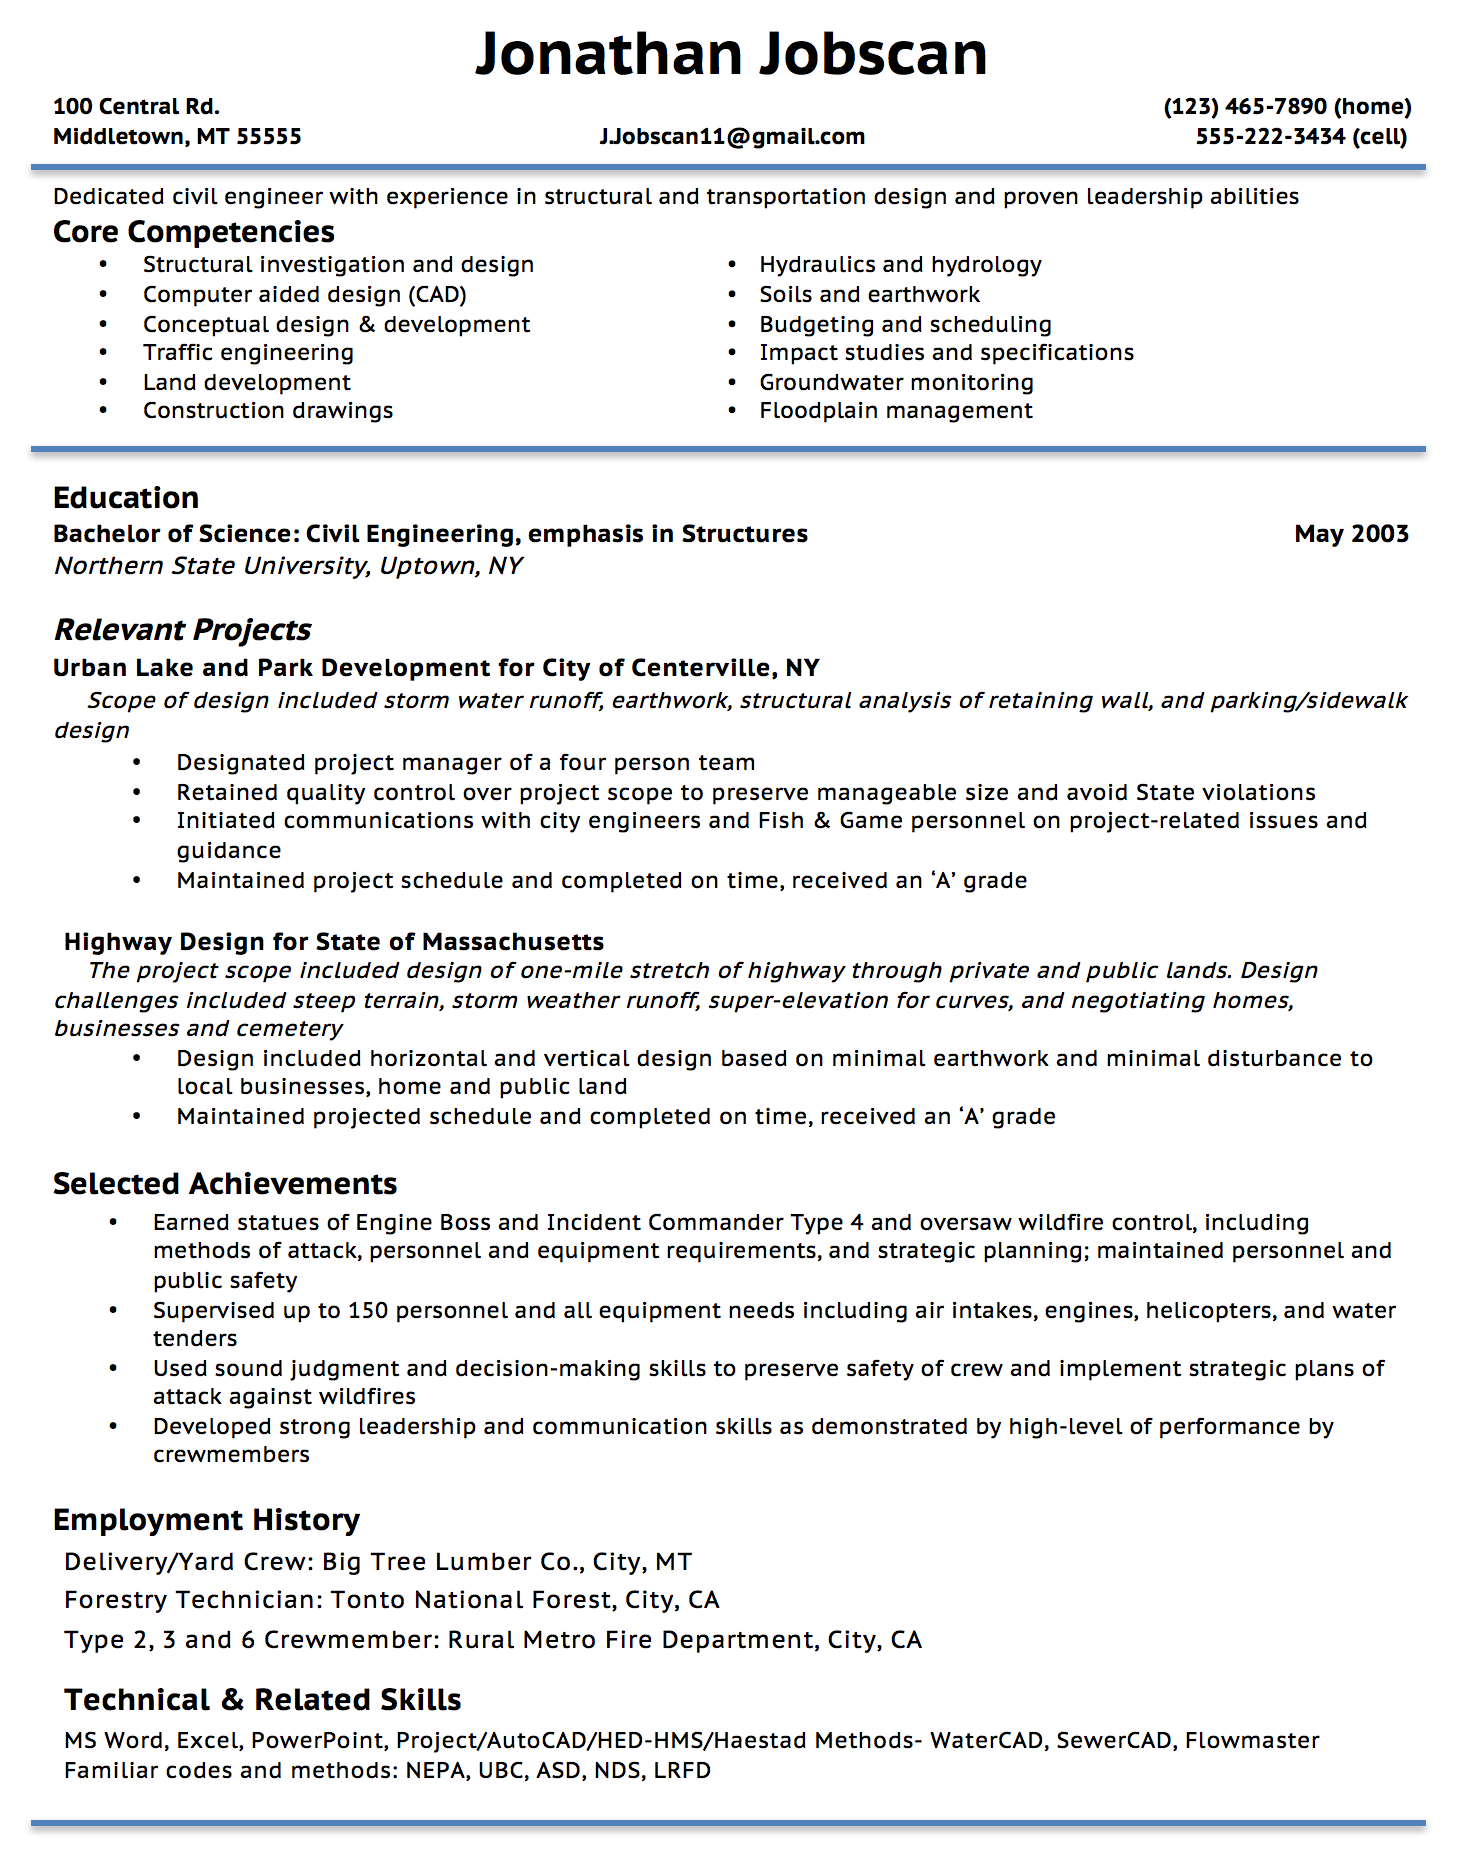 Opposenewapstandardsus  Terrific Resume Writing Guide  Jobscan With Inspiring Example Of A Functional Resume Format With Lovely Resume For Office Job Also Best Resume Layouts In Addition Dental Hygiene Resumes And How To Make Cover Letter For Resume As Well As Entry Level Web Developer Resume Additionally Recruiting Coordinator Resume From Jobscanco With Opposenewapstandardsus  Inspiring Resume Writing Guide  Jobscan With Lovely Example Of A Functional Resume Format And Terrific Resume For Office Job Also Best Resume Layouts In Addition Dental Hygiene Resumes From Jobscanco